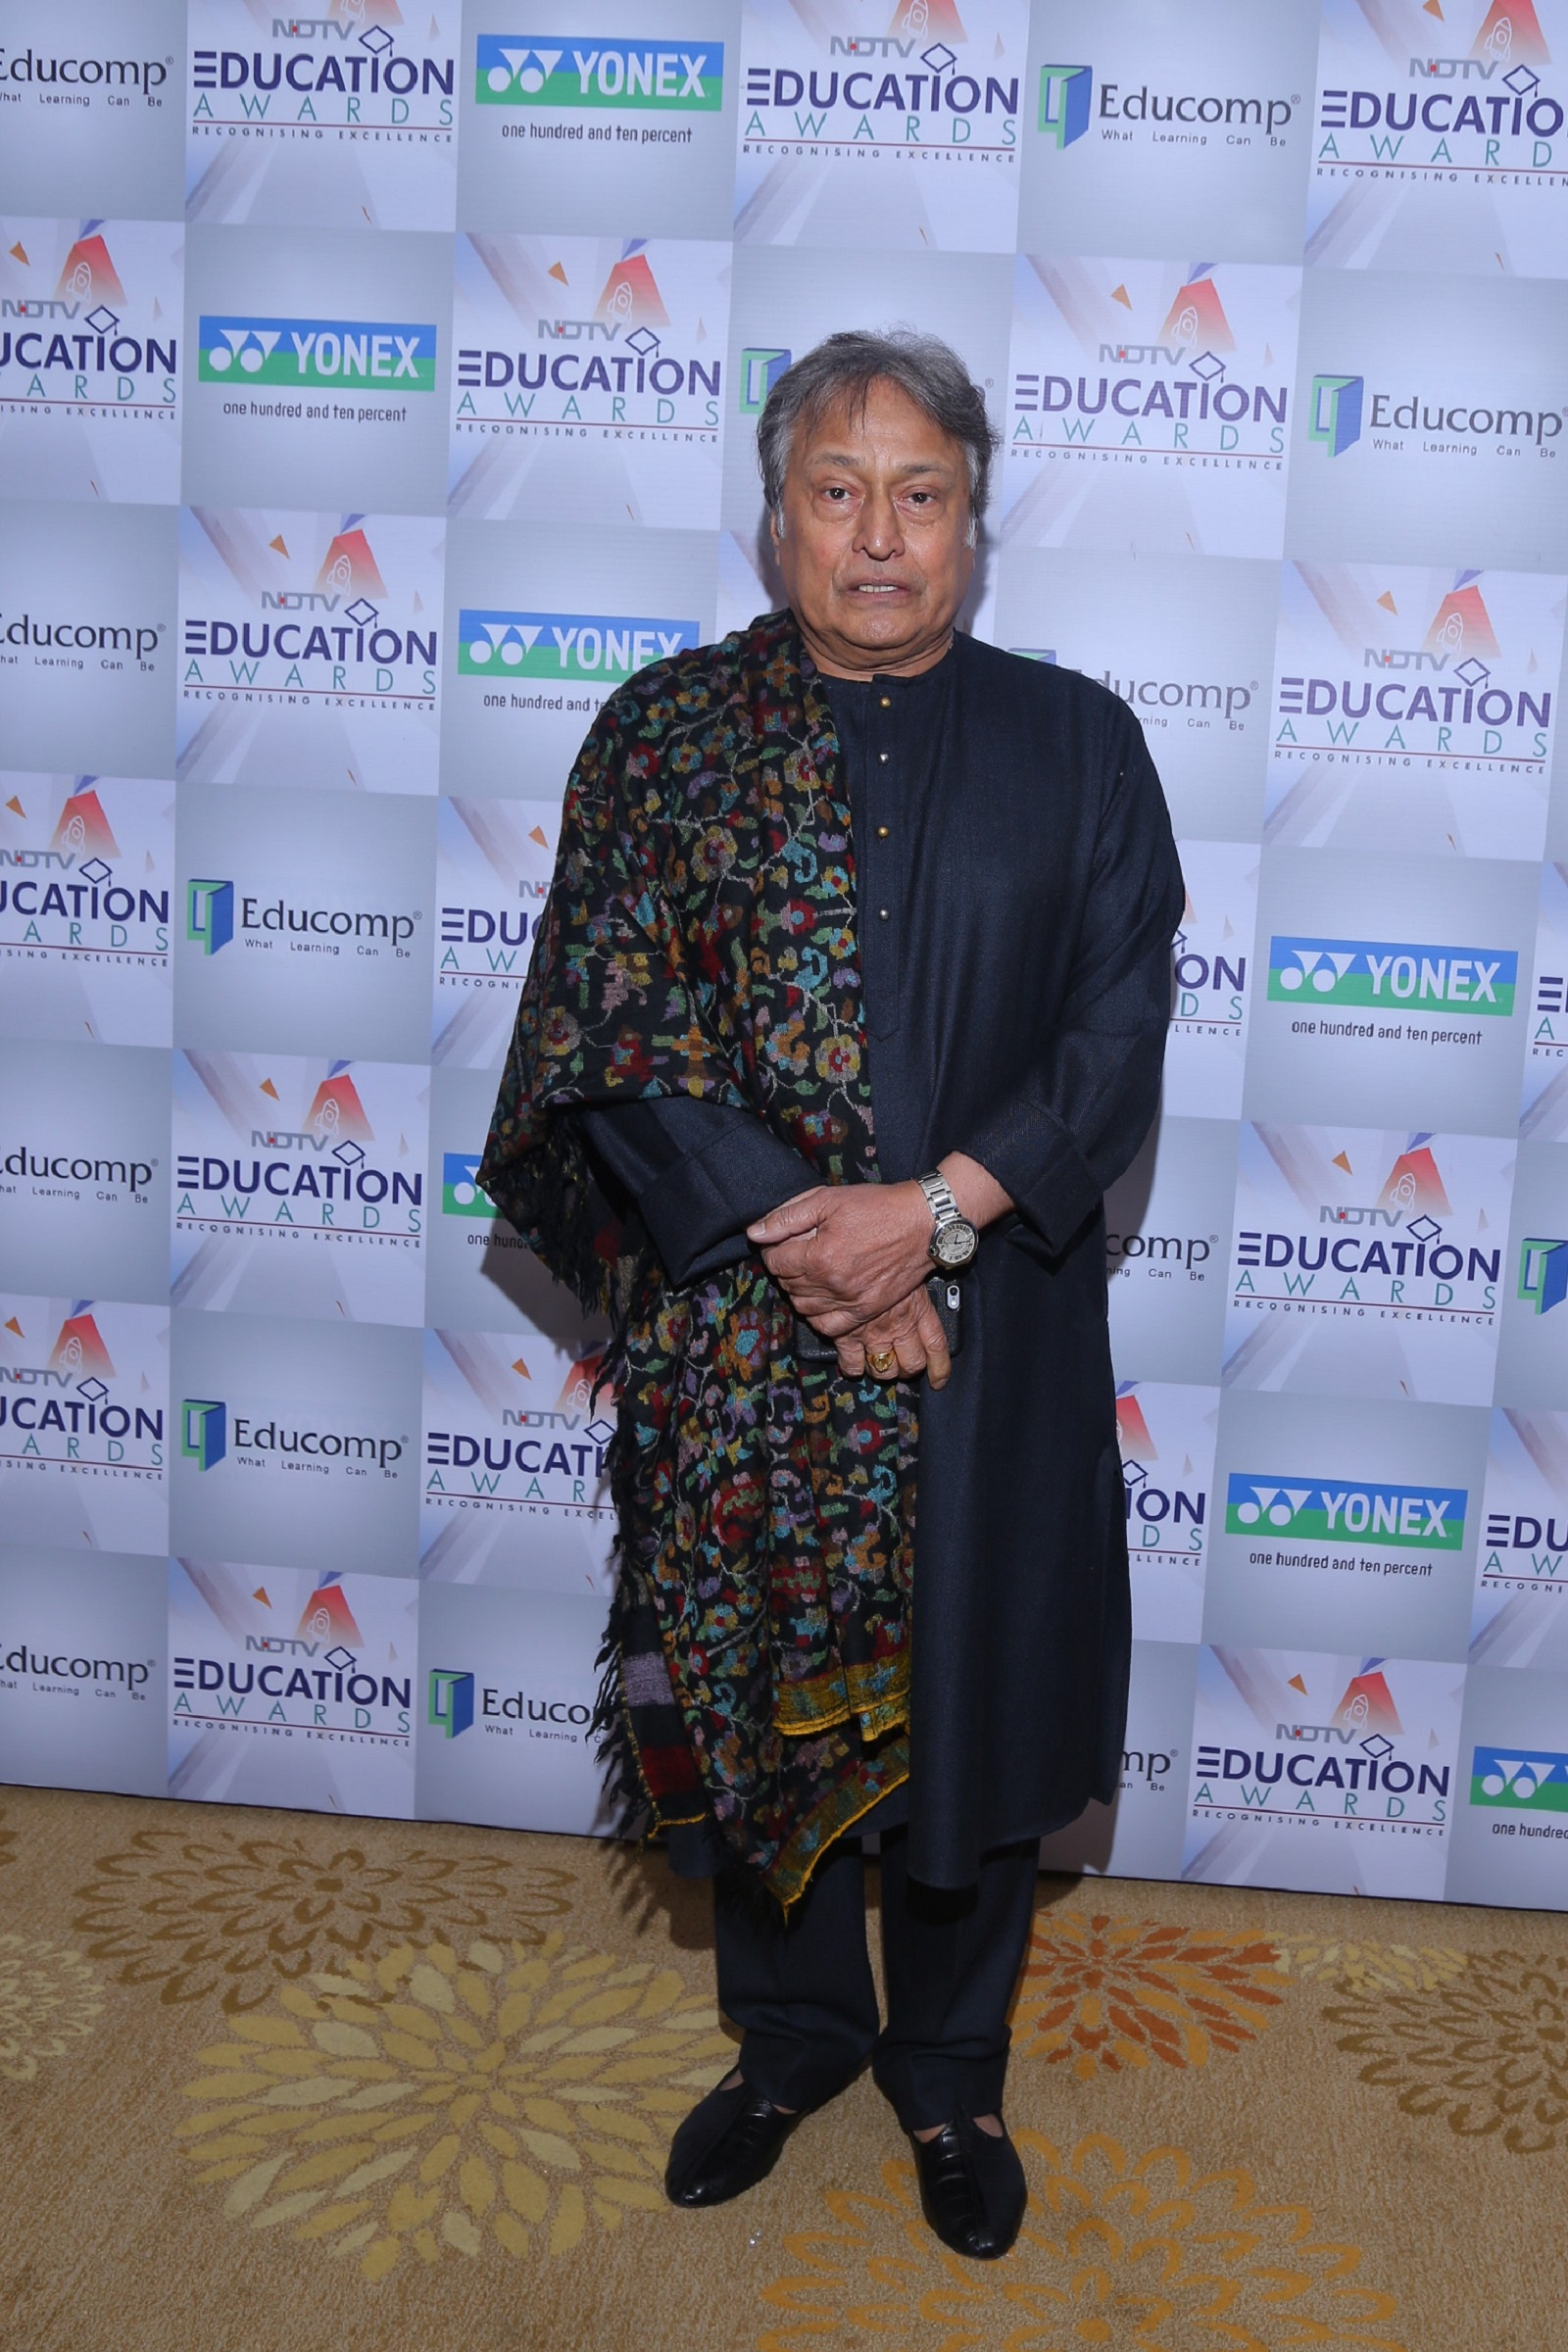 Ustad Amjad Ali Khan at the NDTV Education Awards 2017